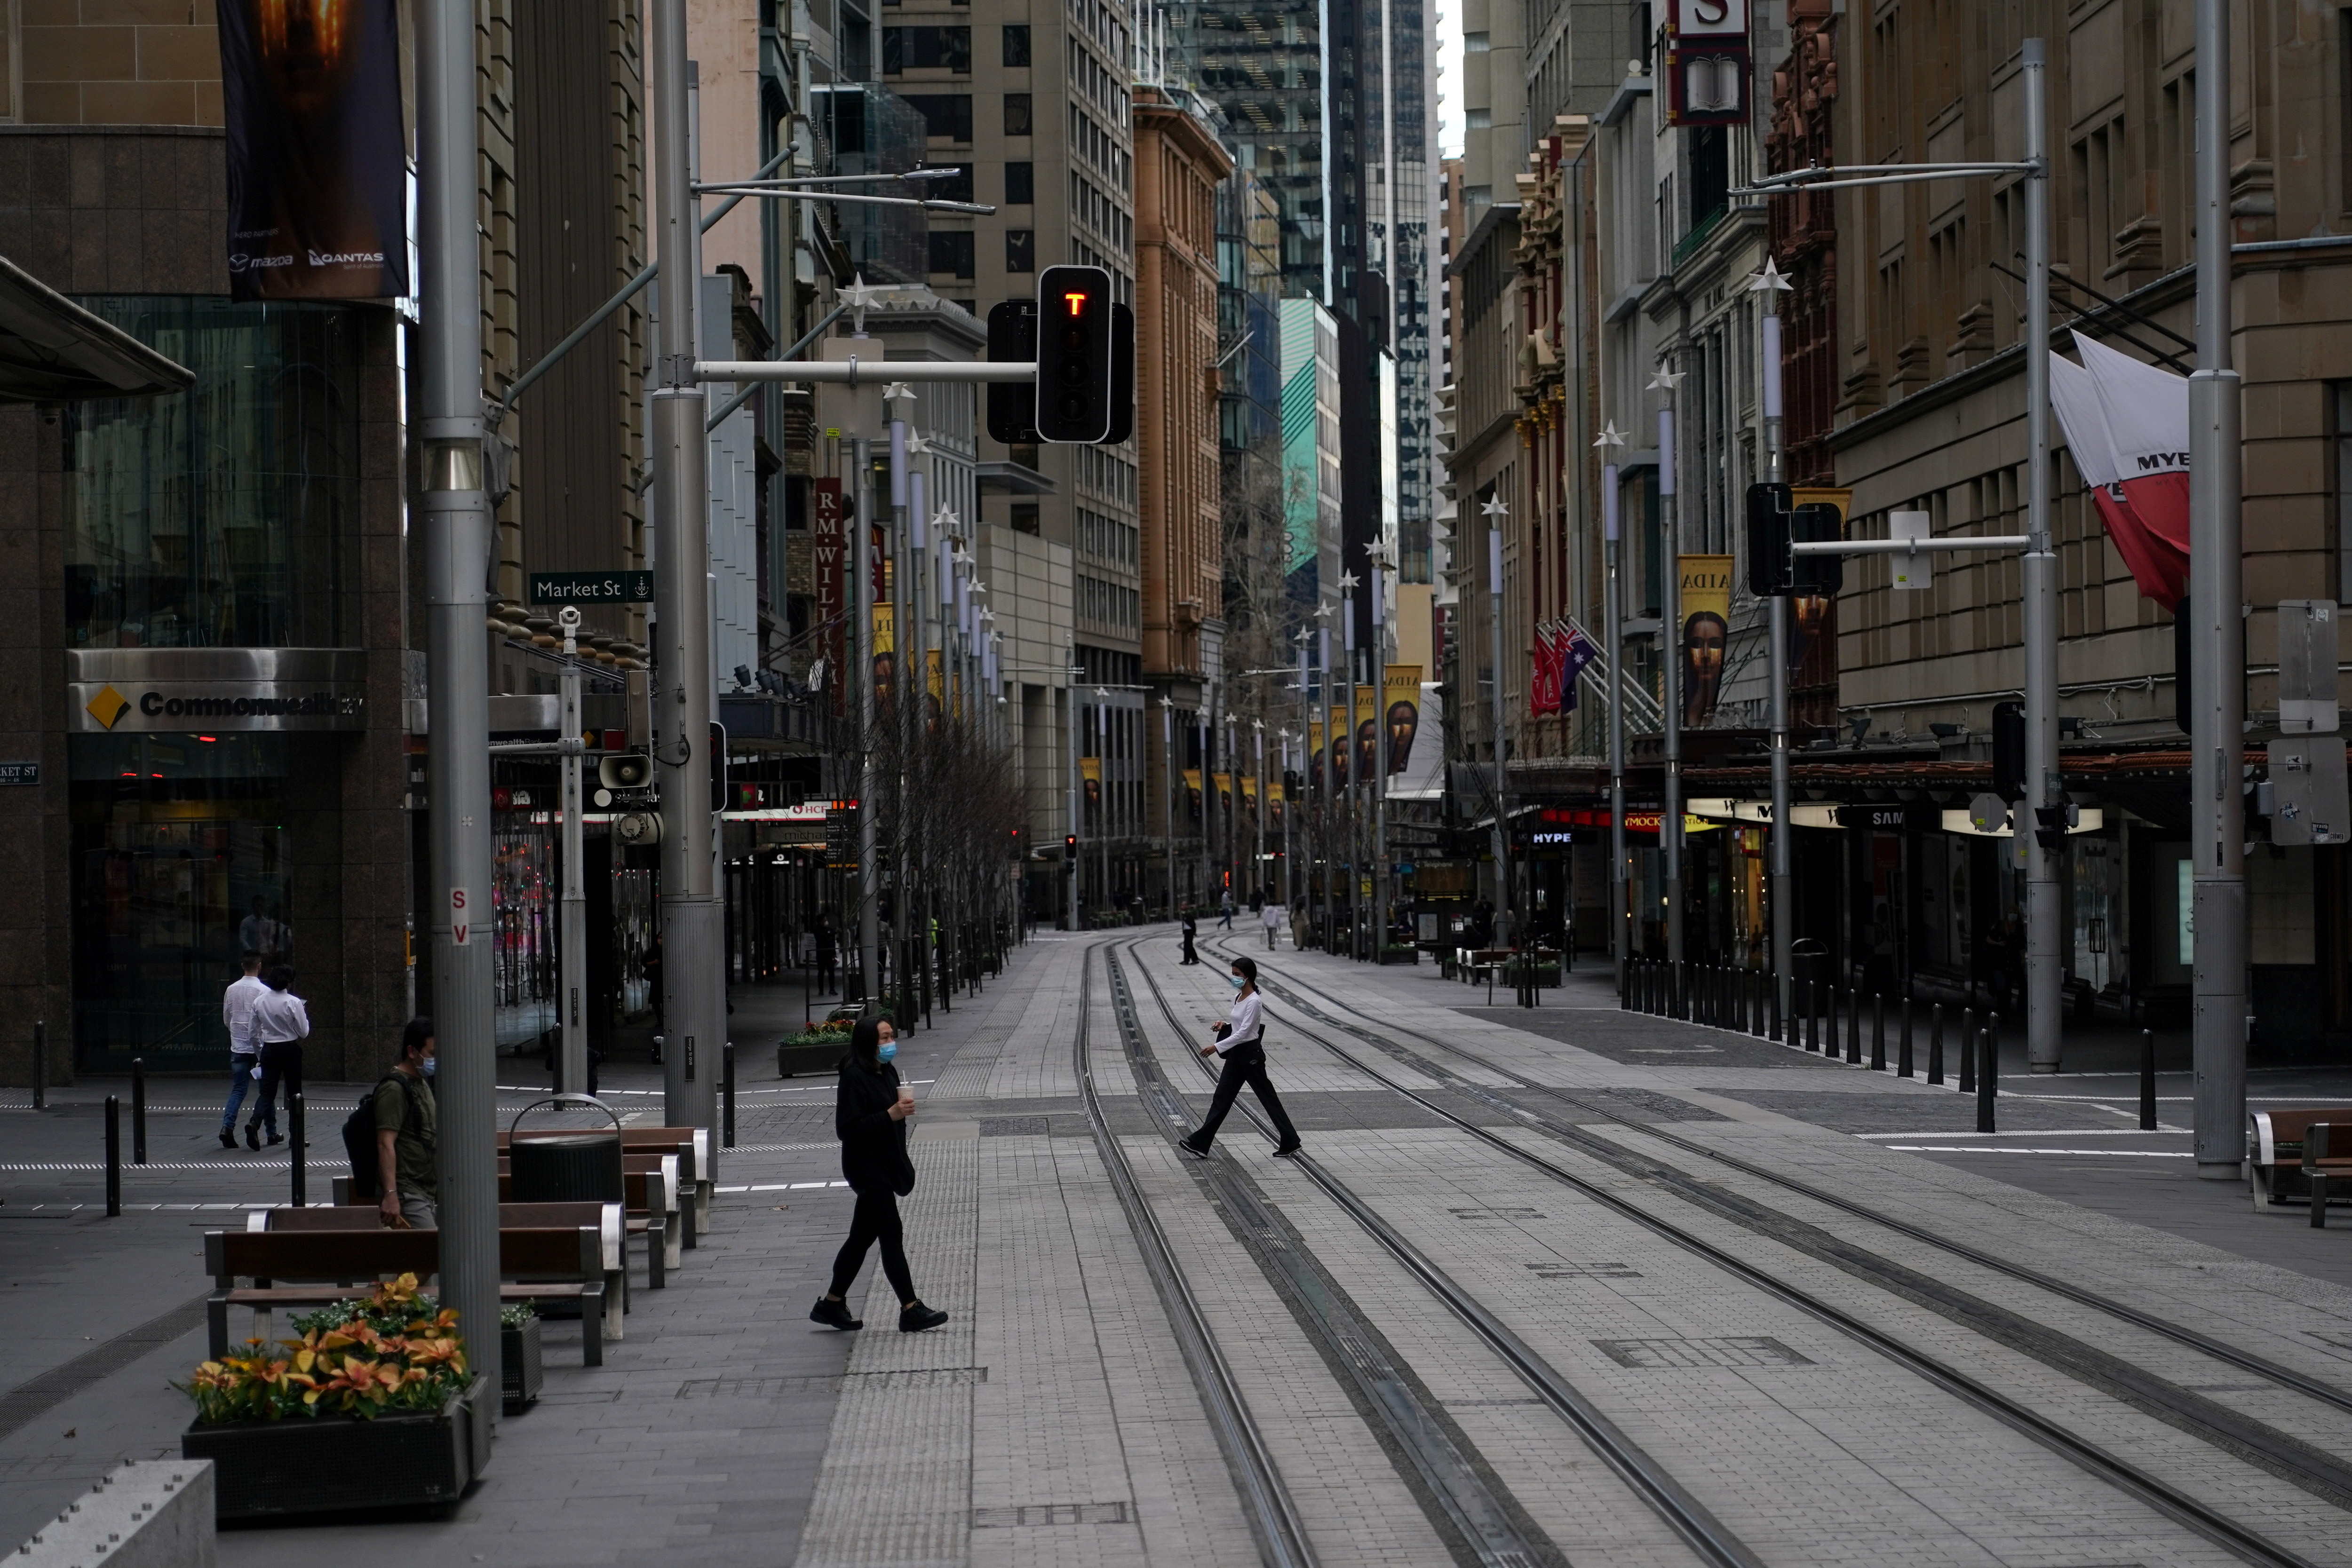 People in protective face masks walk through the quiet city centre during a lockdown to curb the spread of a coronavirus disease (COVID-19) outbreak in Sydney, Australia, July 28, 2021.  REUTERS/Loren Elliott - RC2HTO9R8XP3